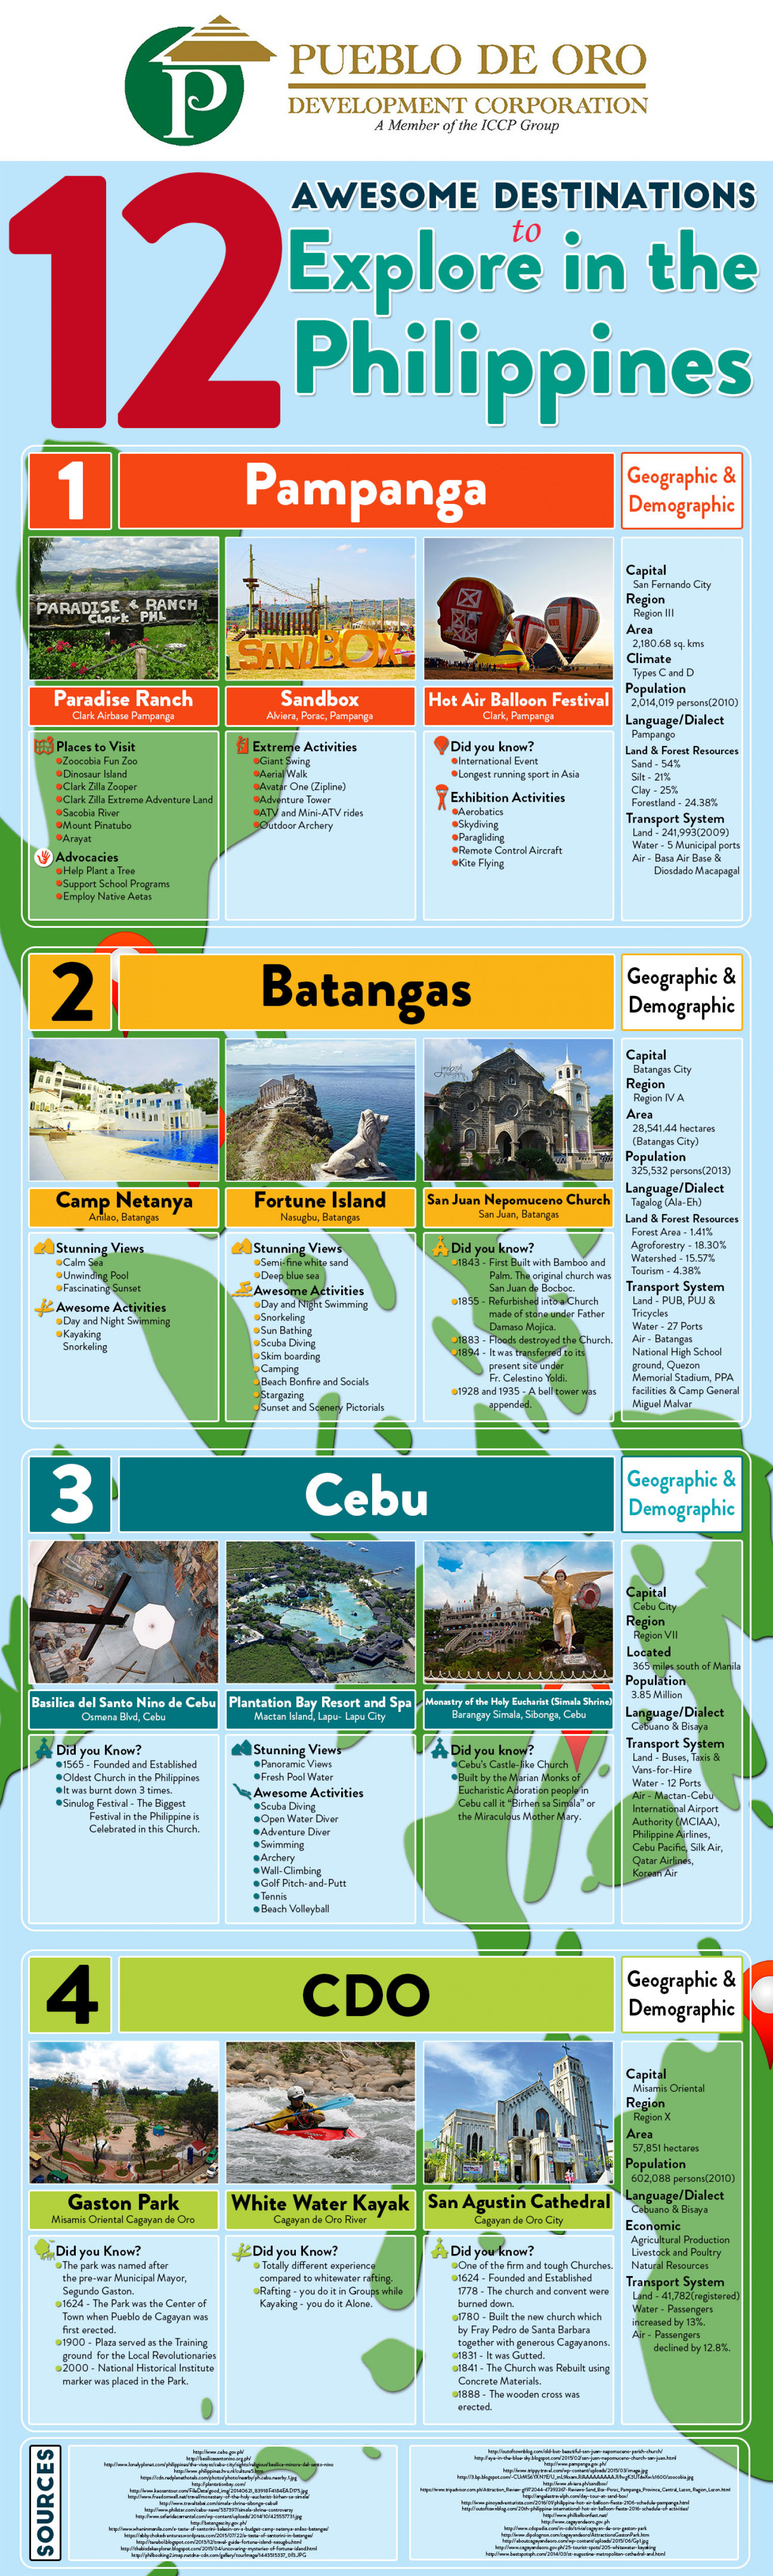 12 Awesome Destinations to Explore in the Philippines Infographic